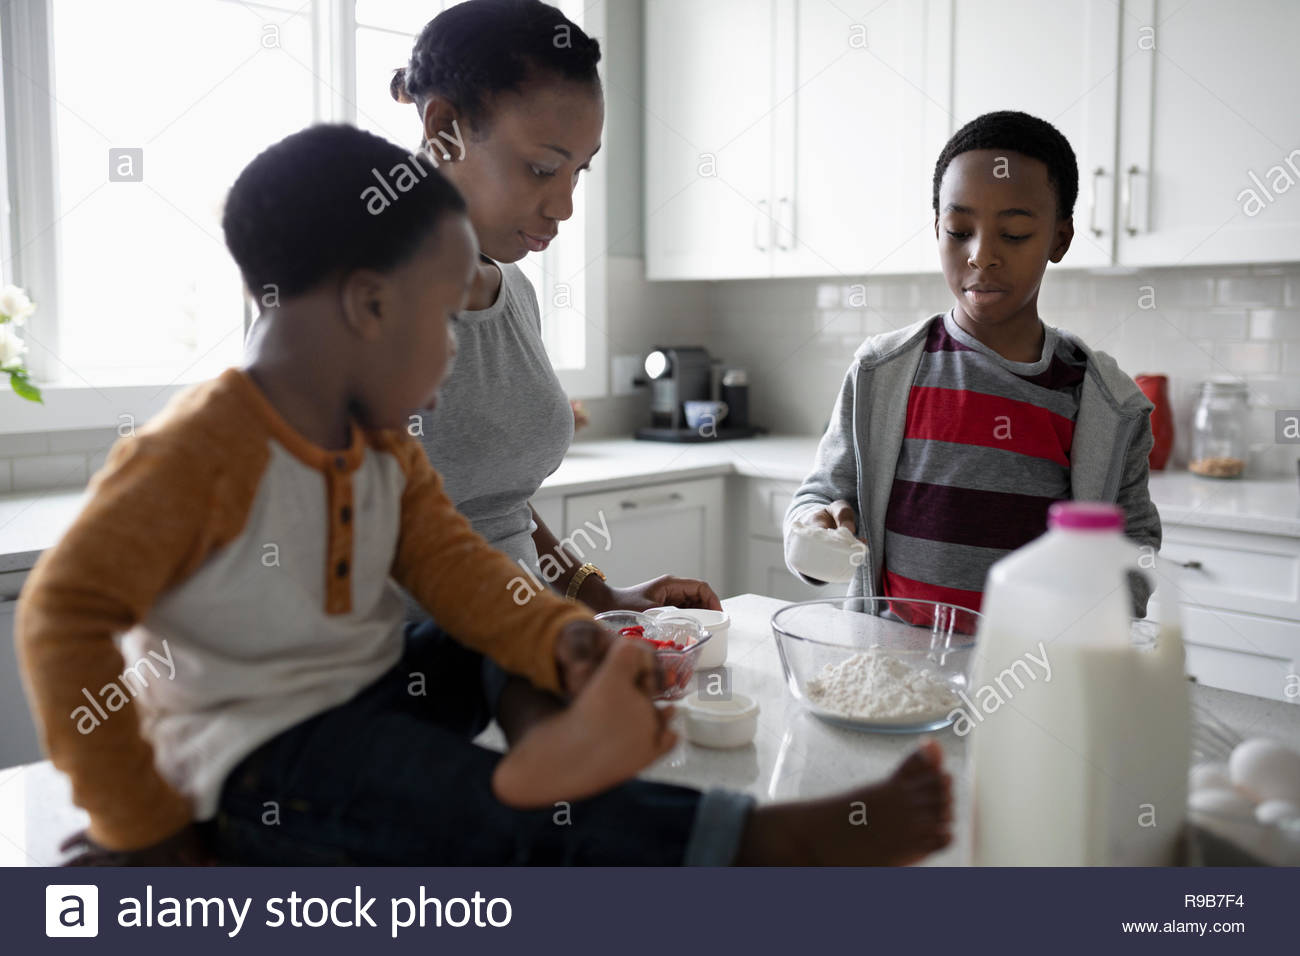 Mother and sons baking in kitchen - Stock Image